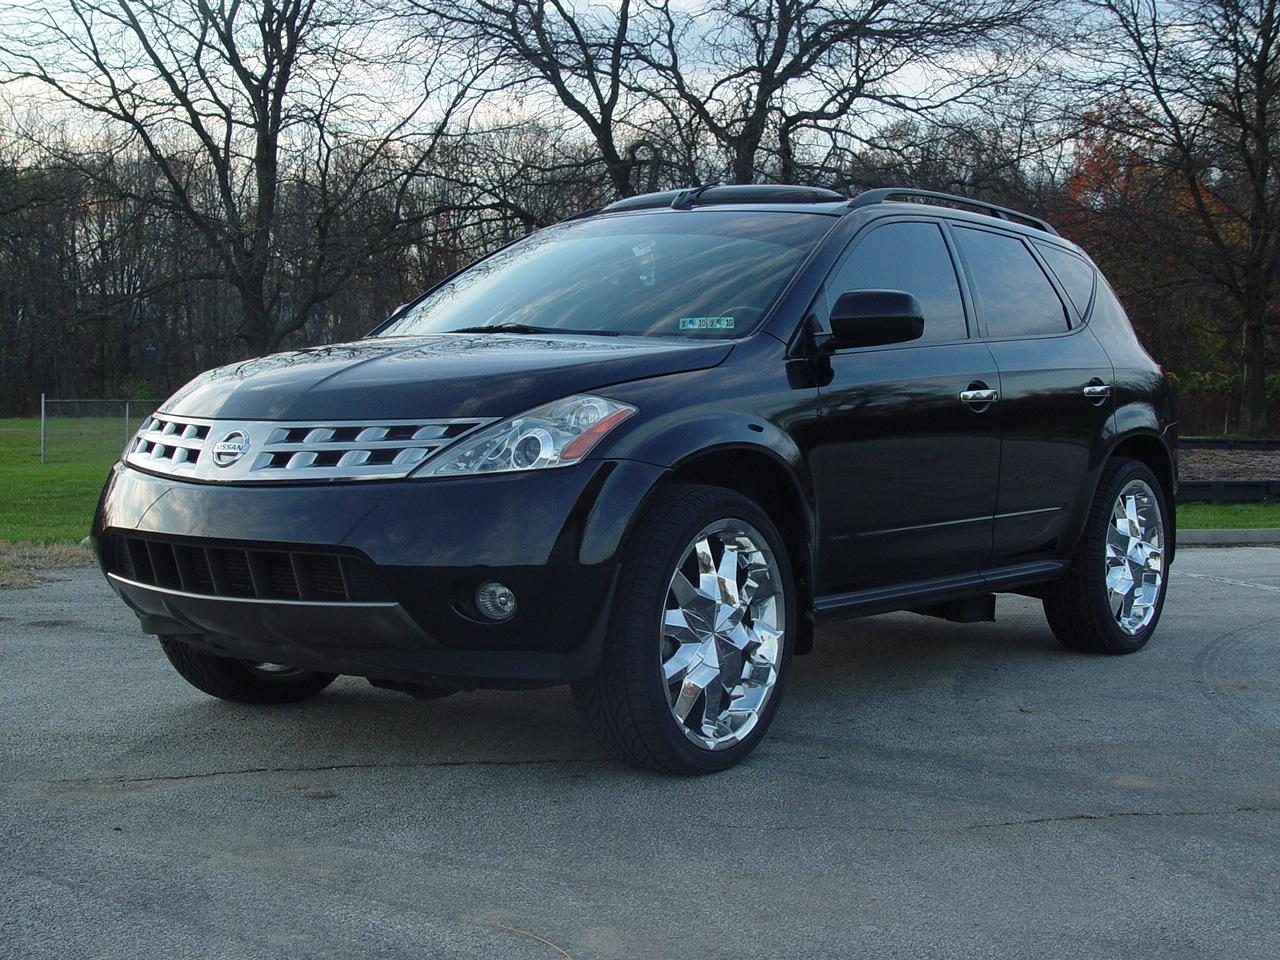 suv awd edmunds sl nissan murano used sale pricing img for cvt